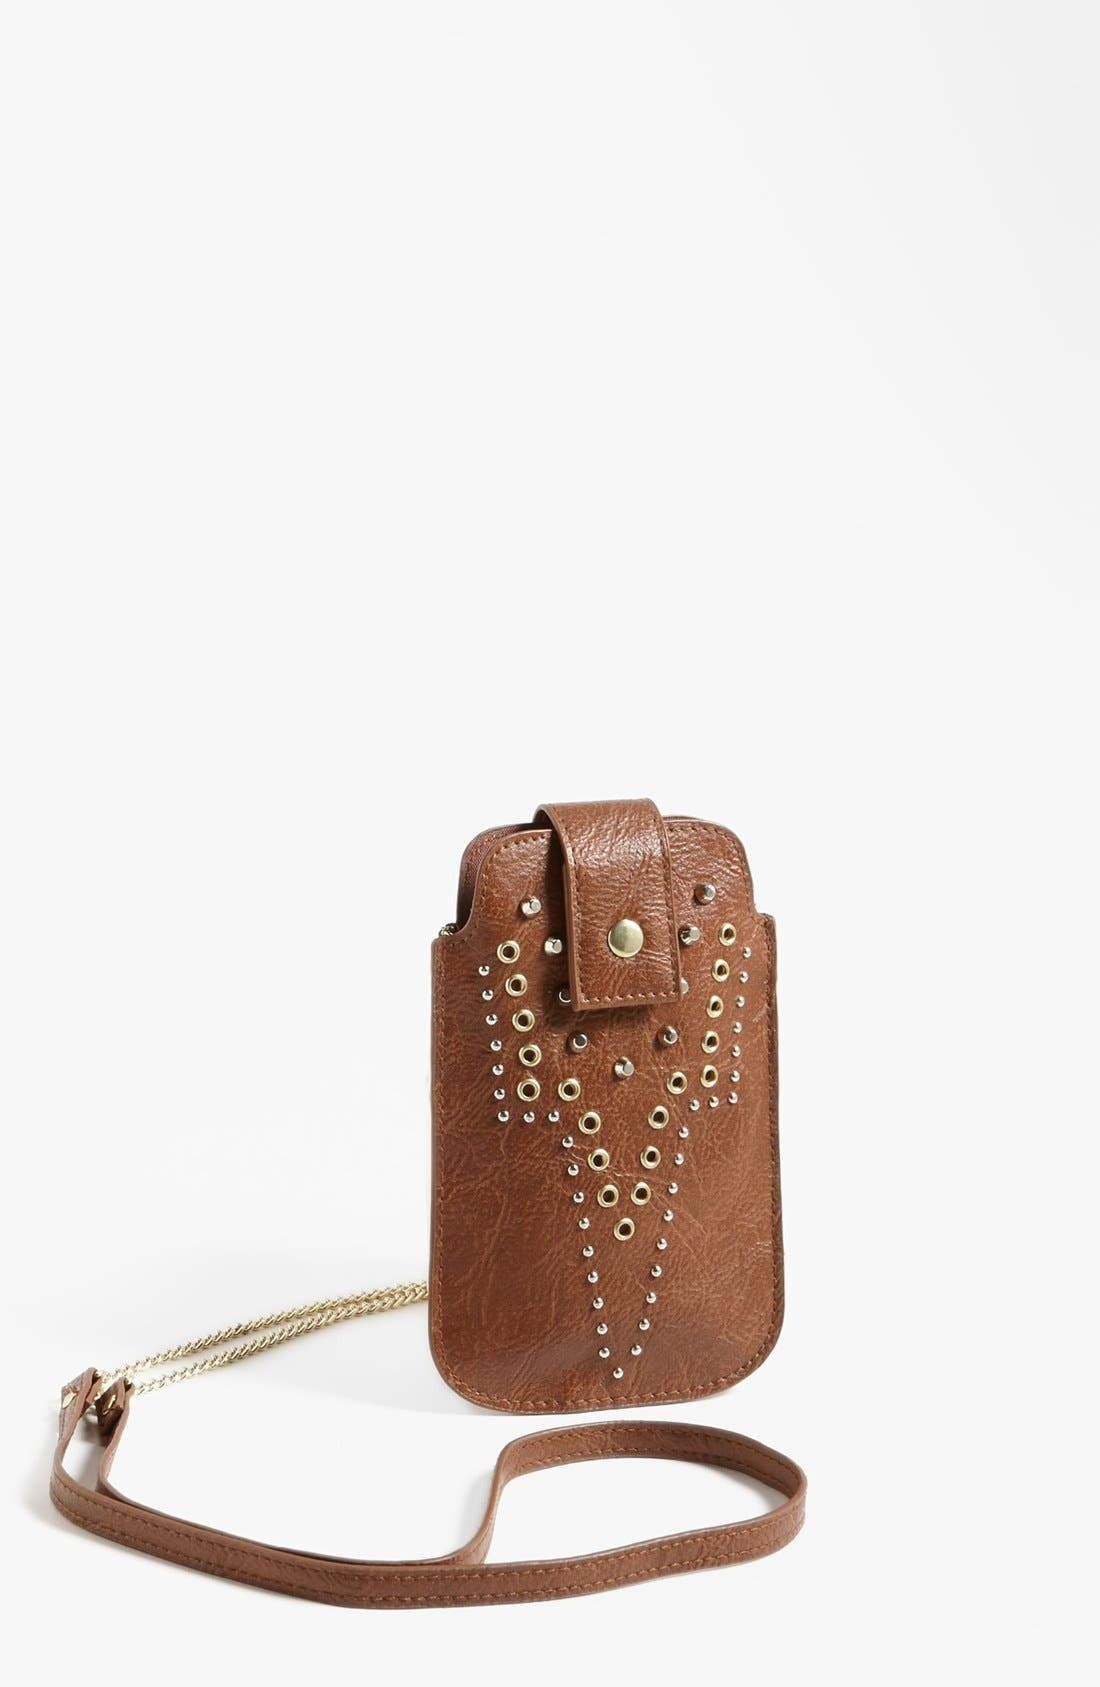 Alternate Image 1 Selected - T-shirt & Jeans Studded Faux Leather Crossbody Pouch (Juniors)